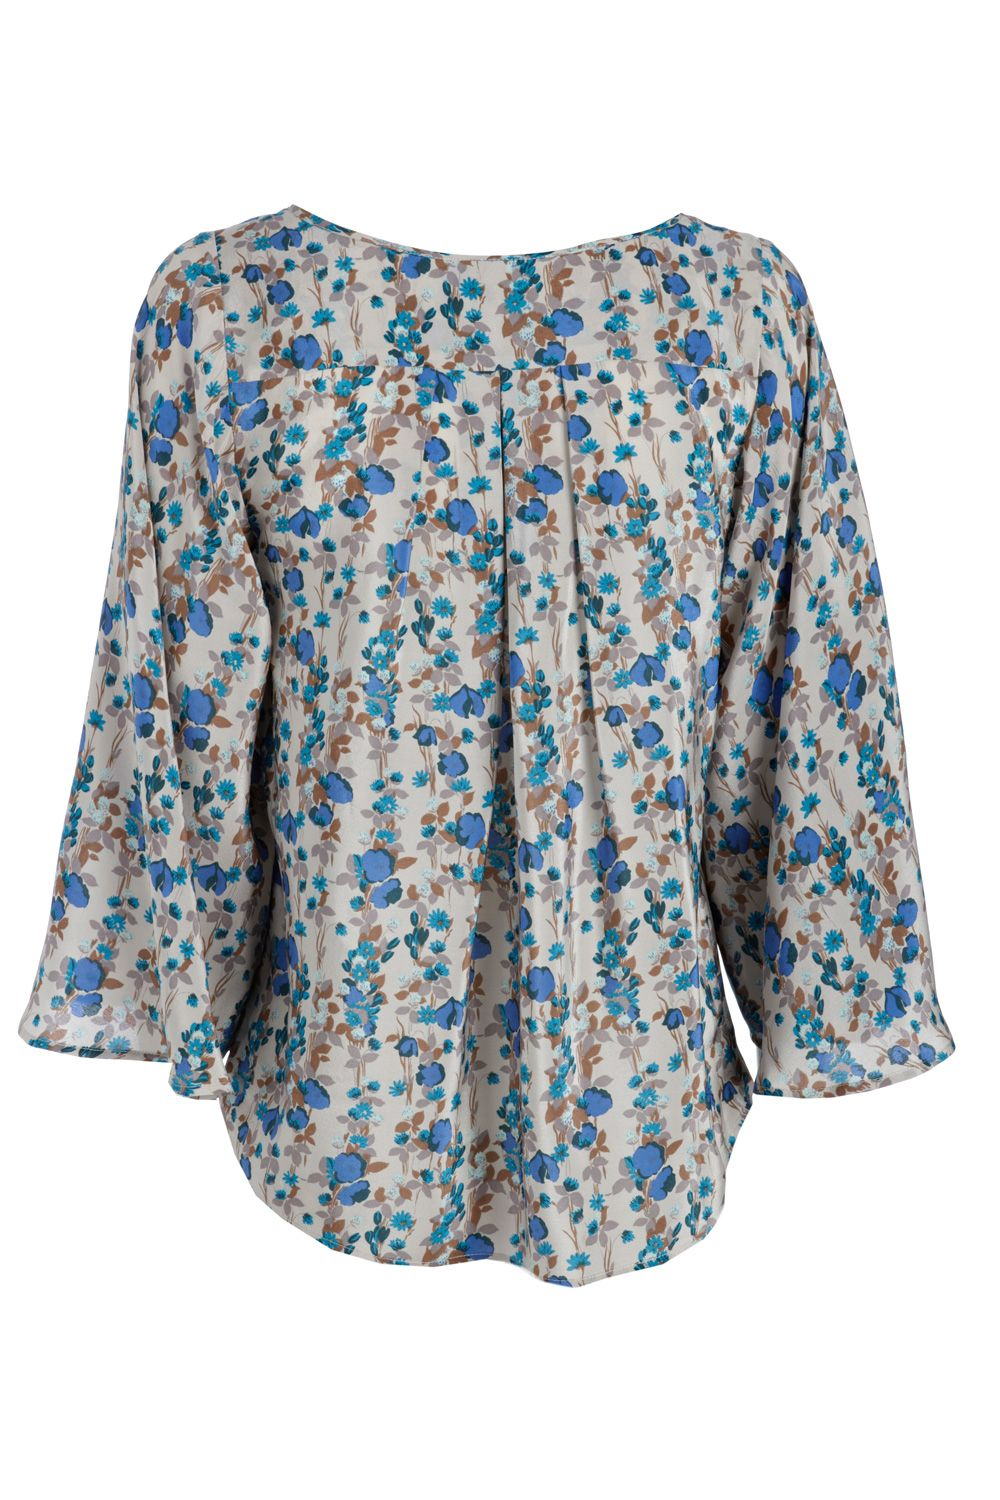 Warehouse Linear poppy blouse Multi-Coloured product image